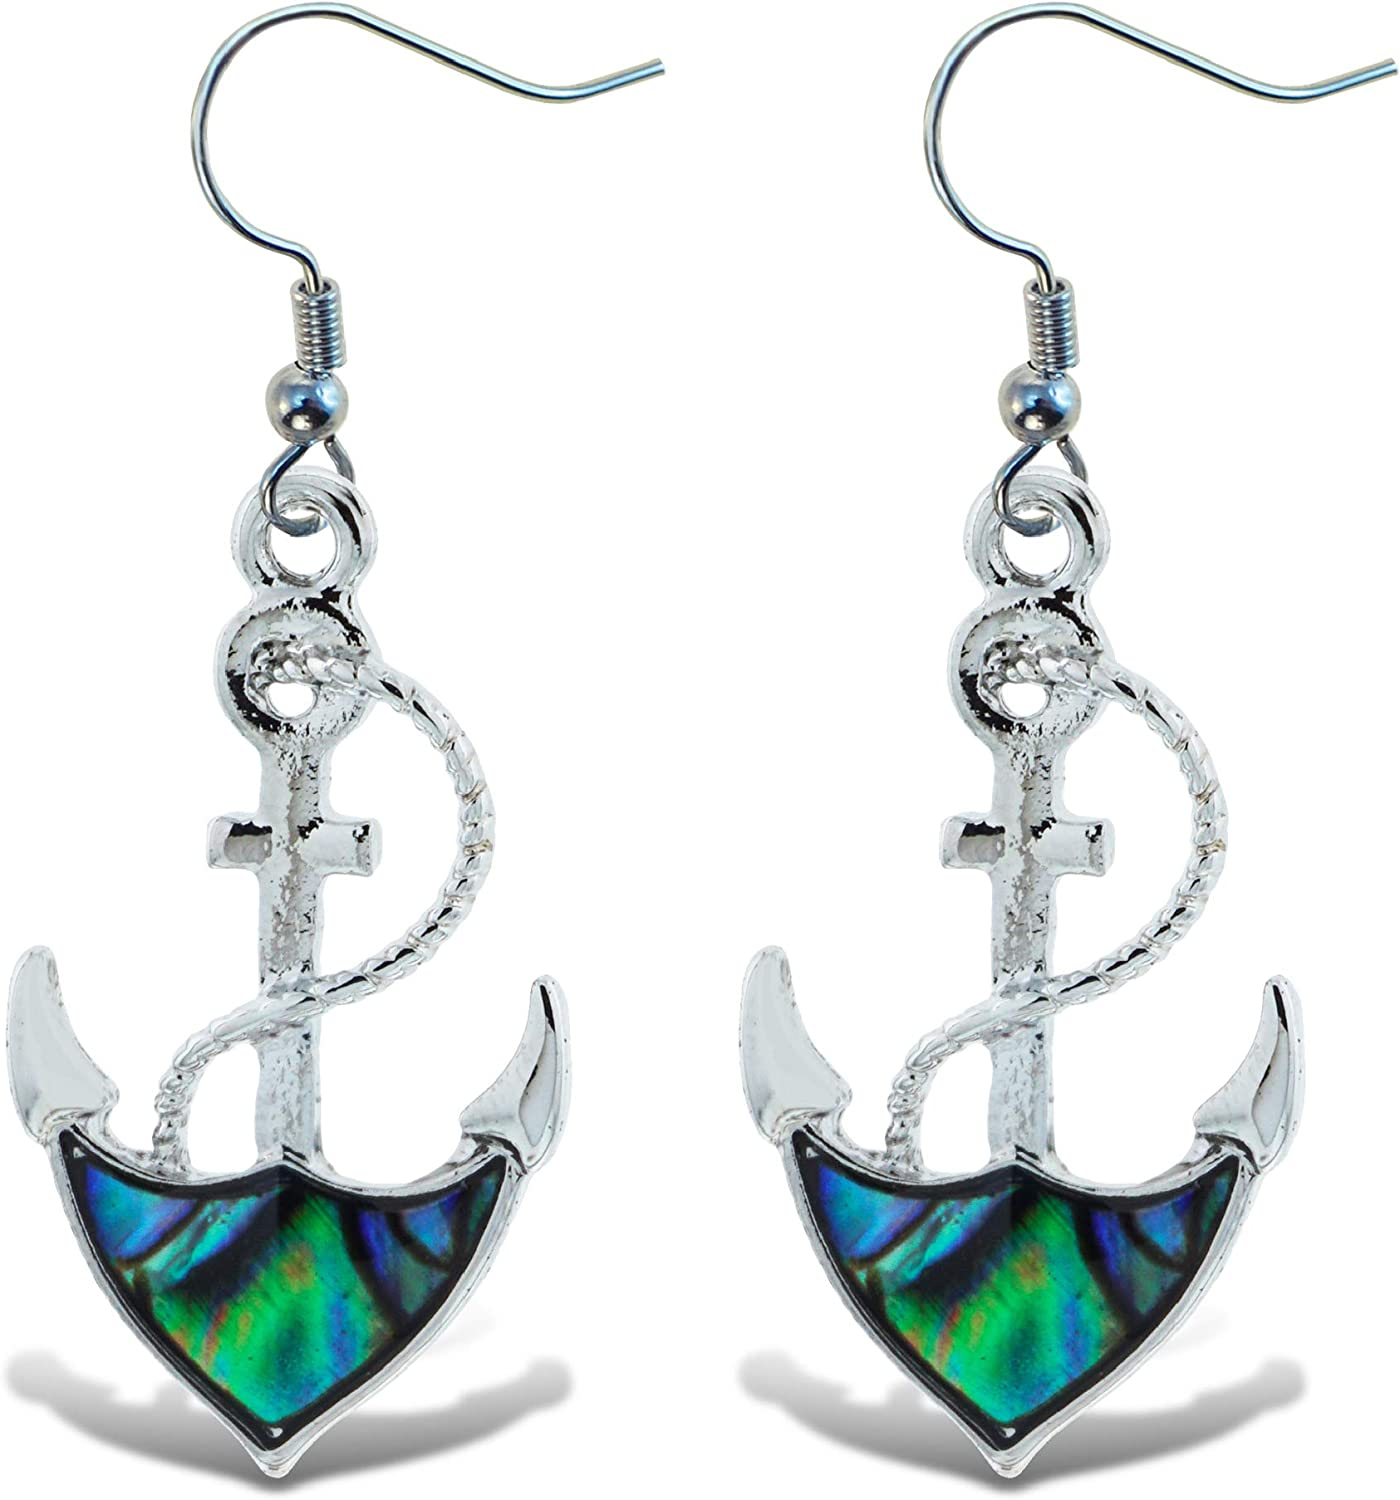 Anchor pendant necklace with shell earrings